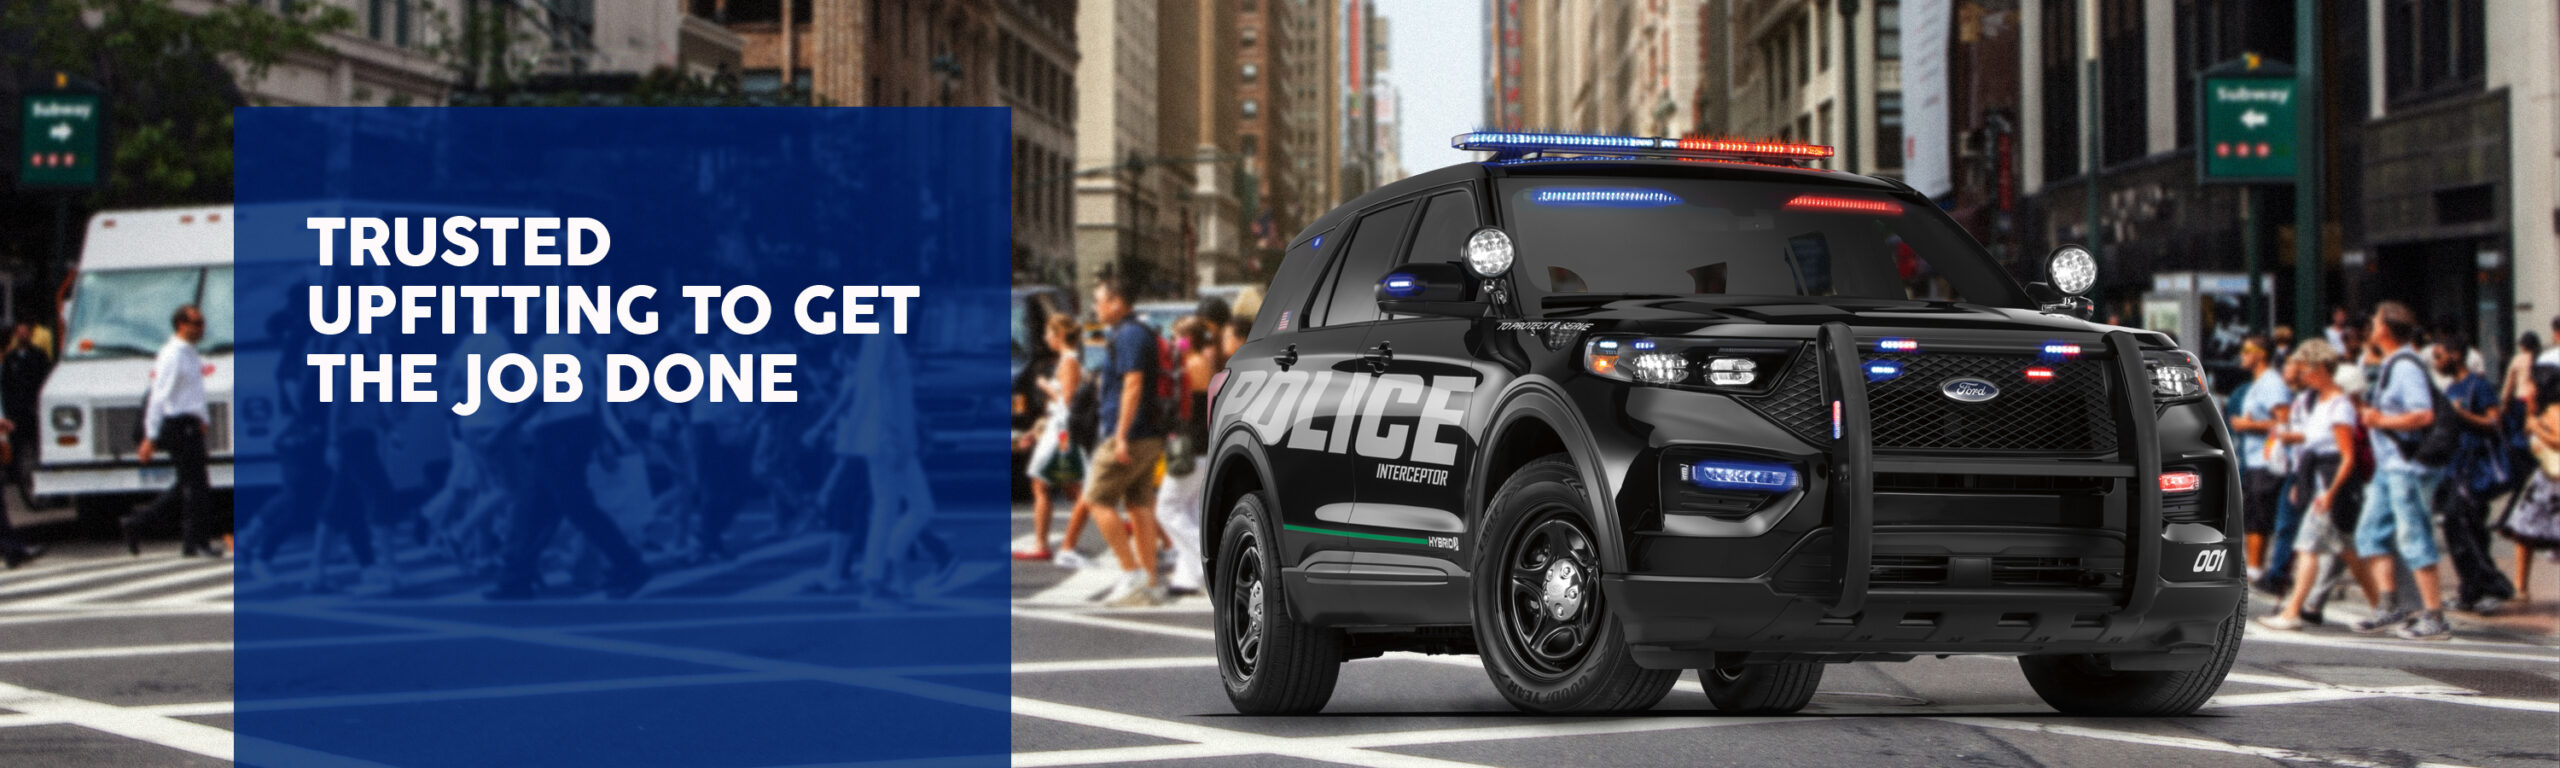 Ford Utility Police Vehicle - Trusted Upfitters